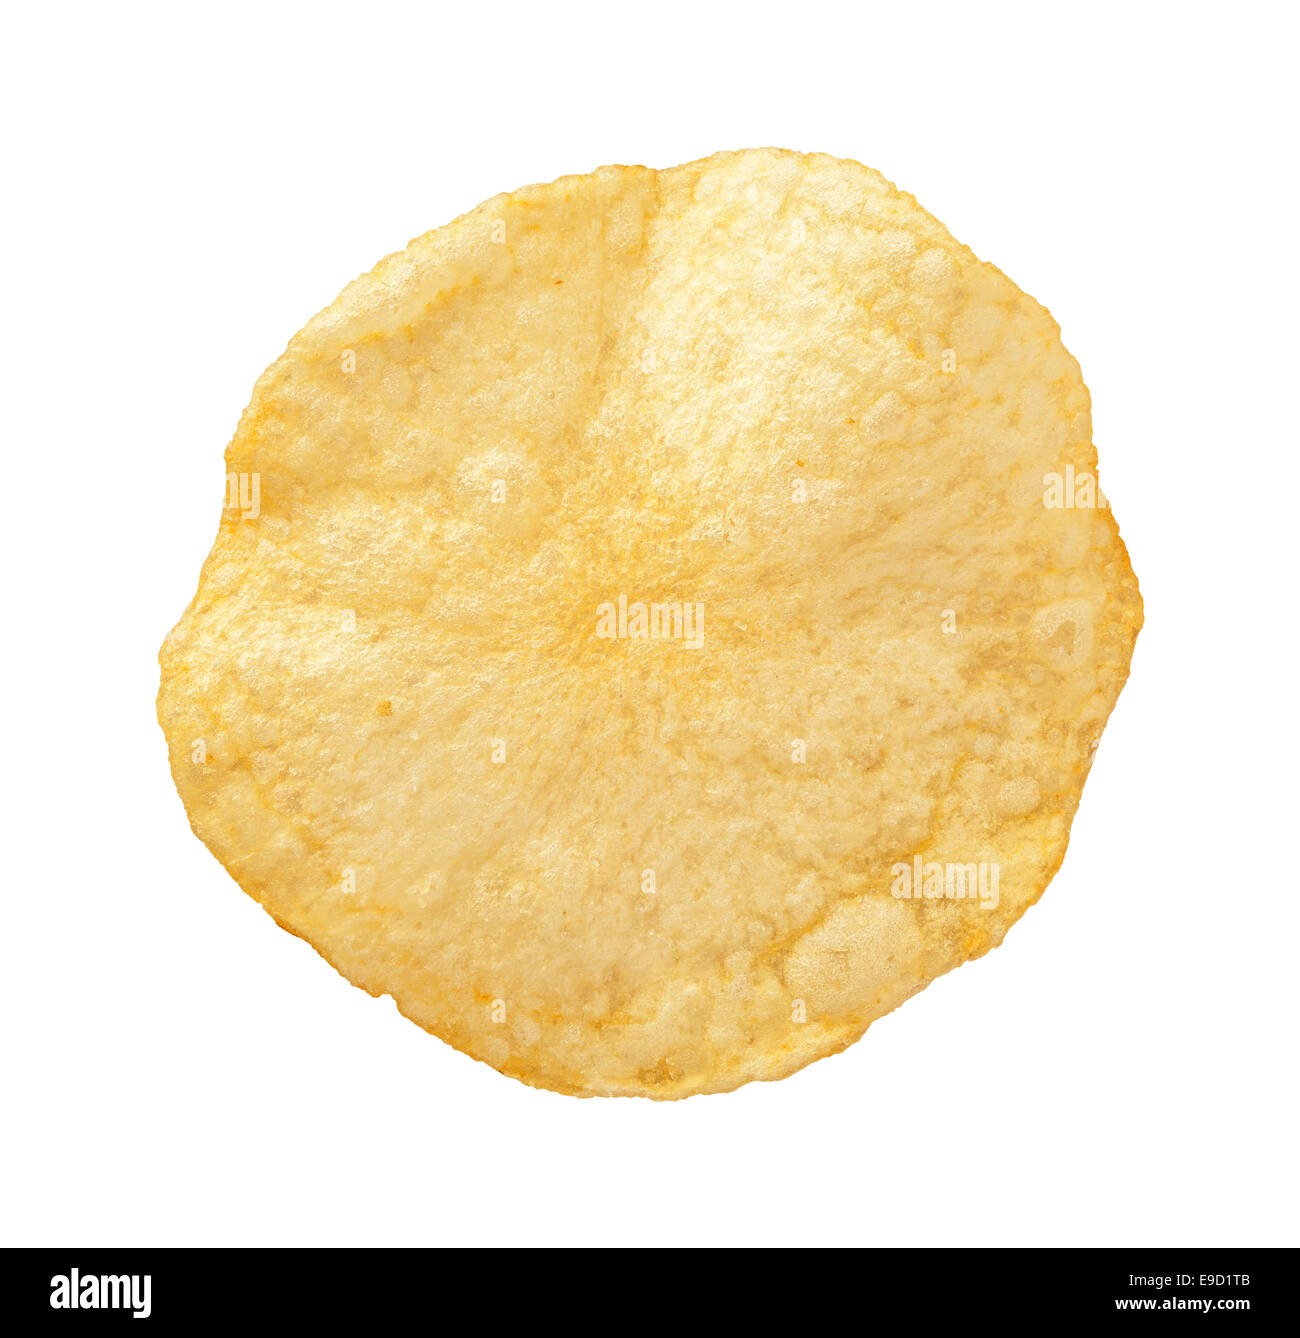 A single Potato Chip isolated on a white background Stock Photo